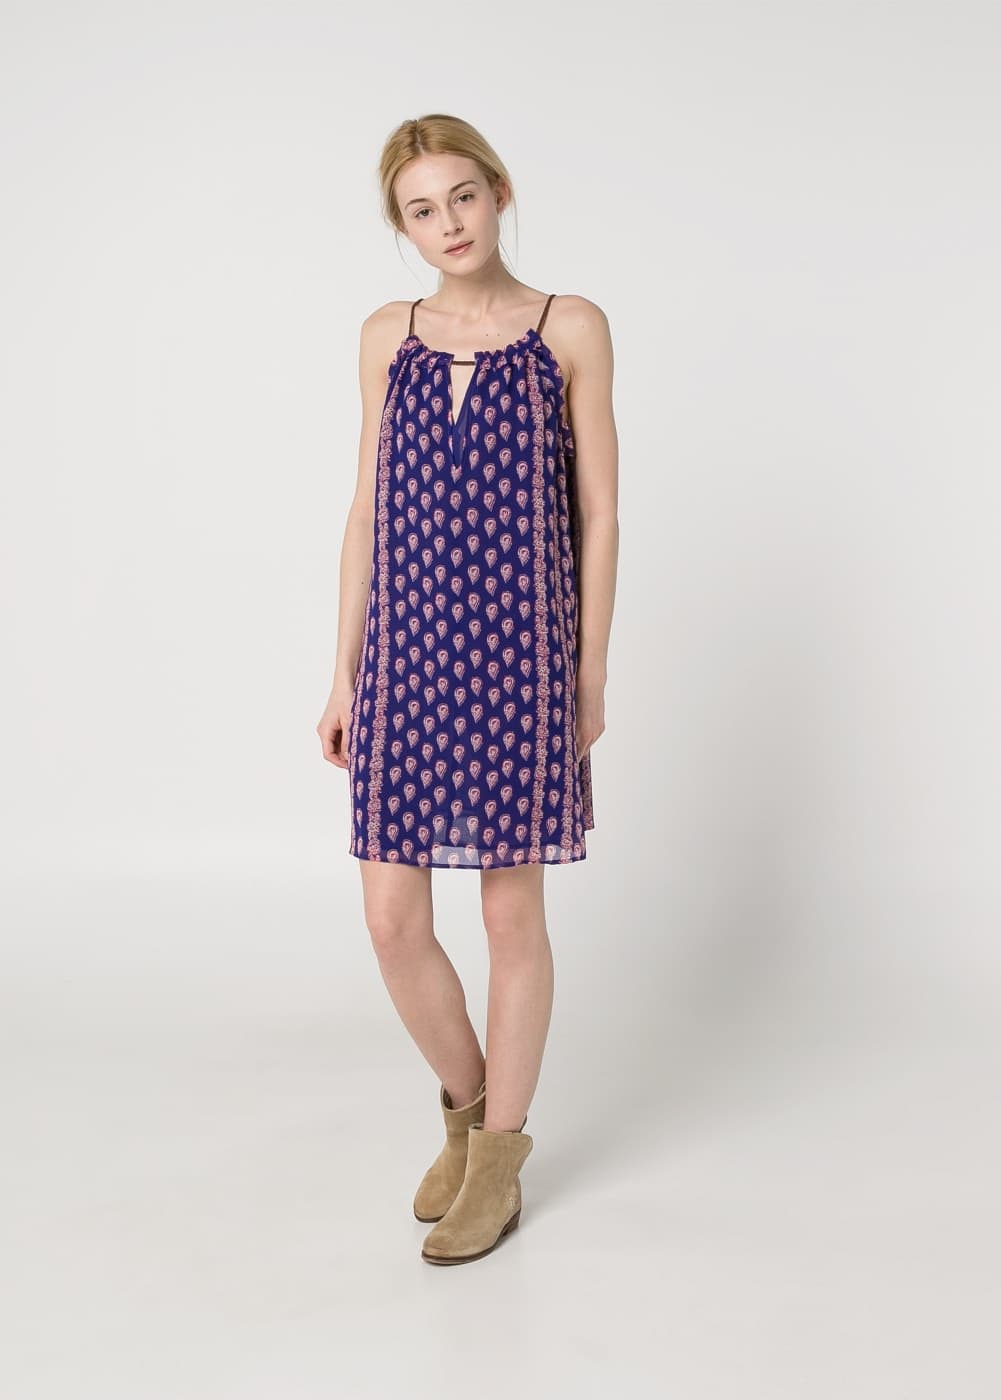 Paisley halter dress